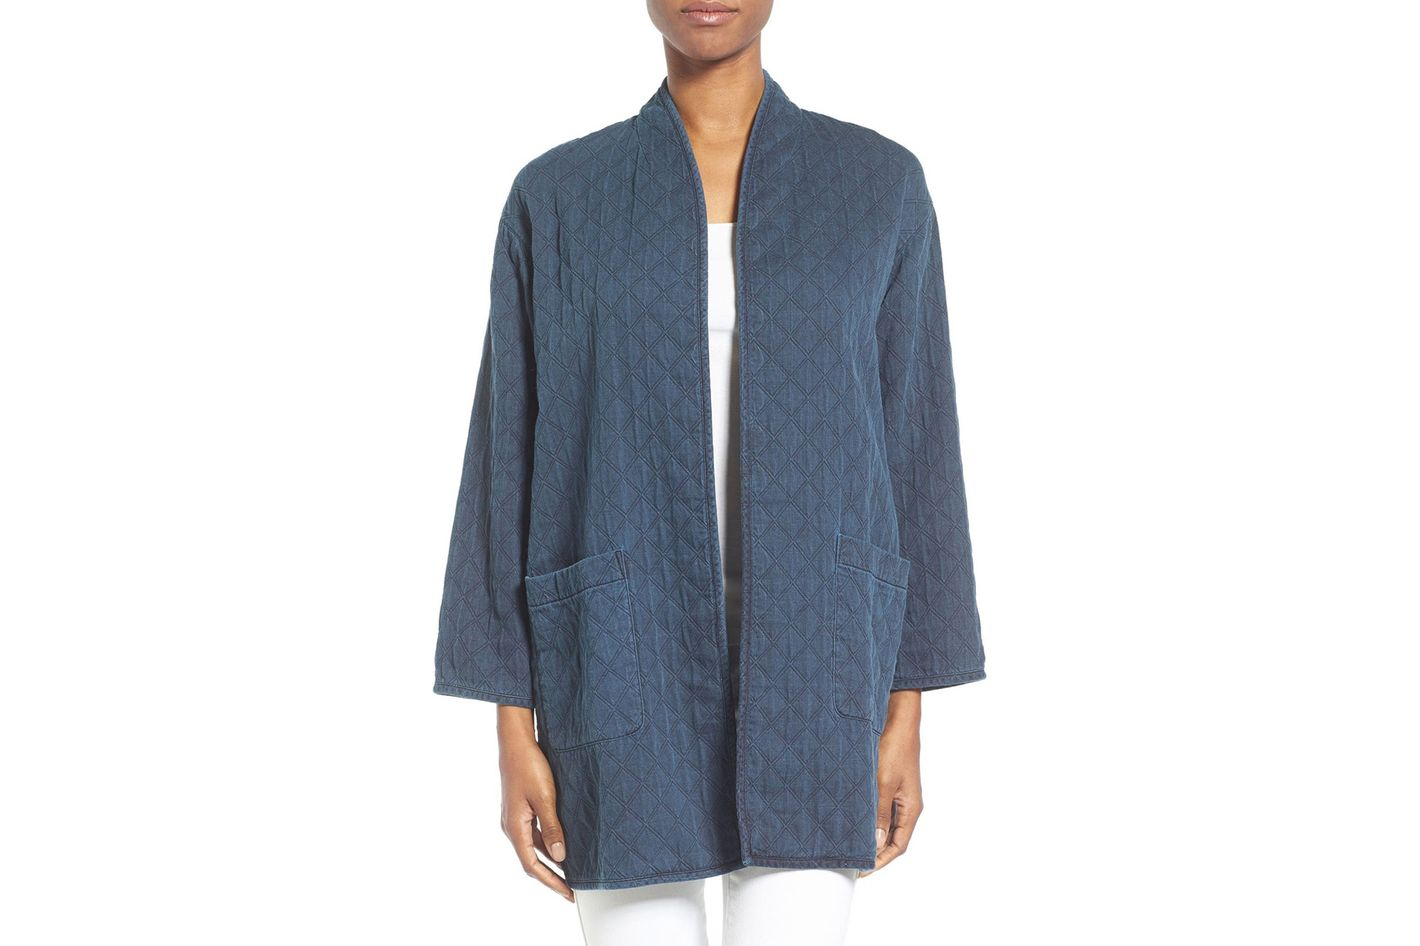 Eileen Fisher Print Denim Jacket